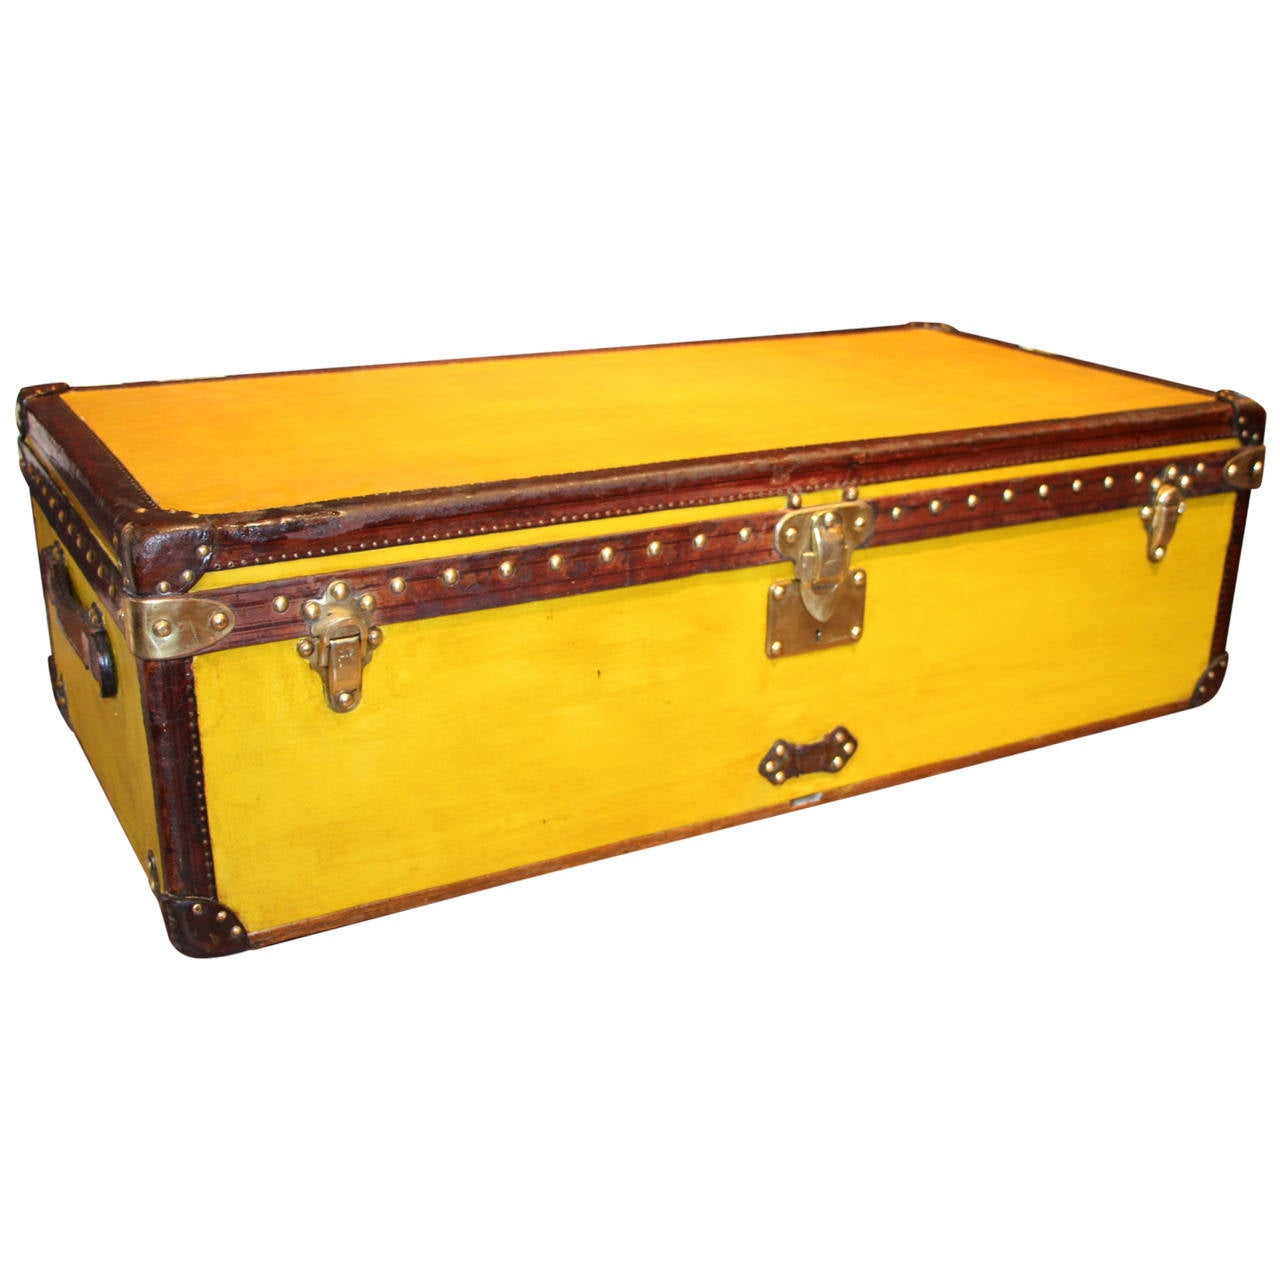 Lv Trunk Coffee Table: 1910's Yellow Canvas And Leather Louis Vuitton Cabin Trunk